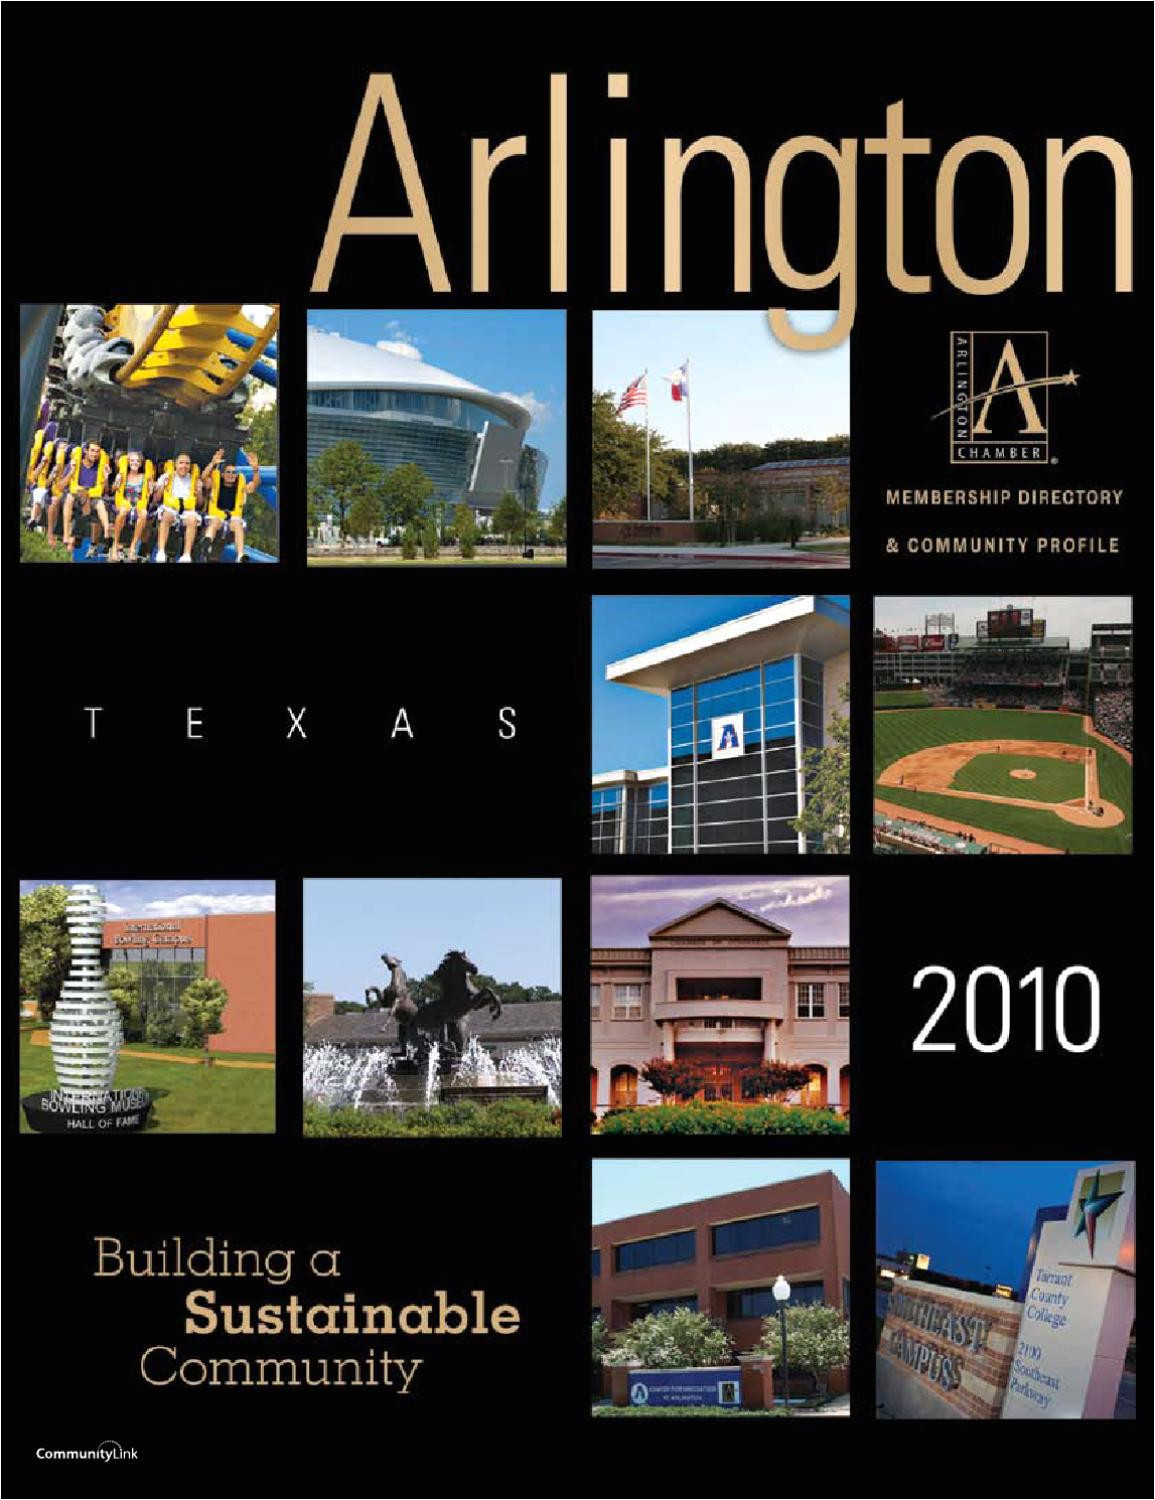 arlington tx 2010 membership directory and community profile by tivoli design media group issuu